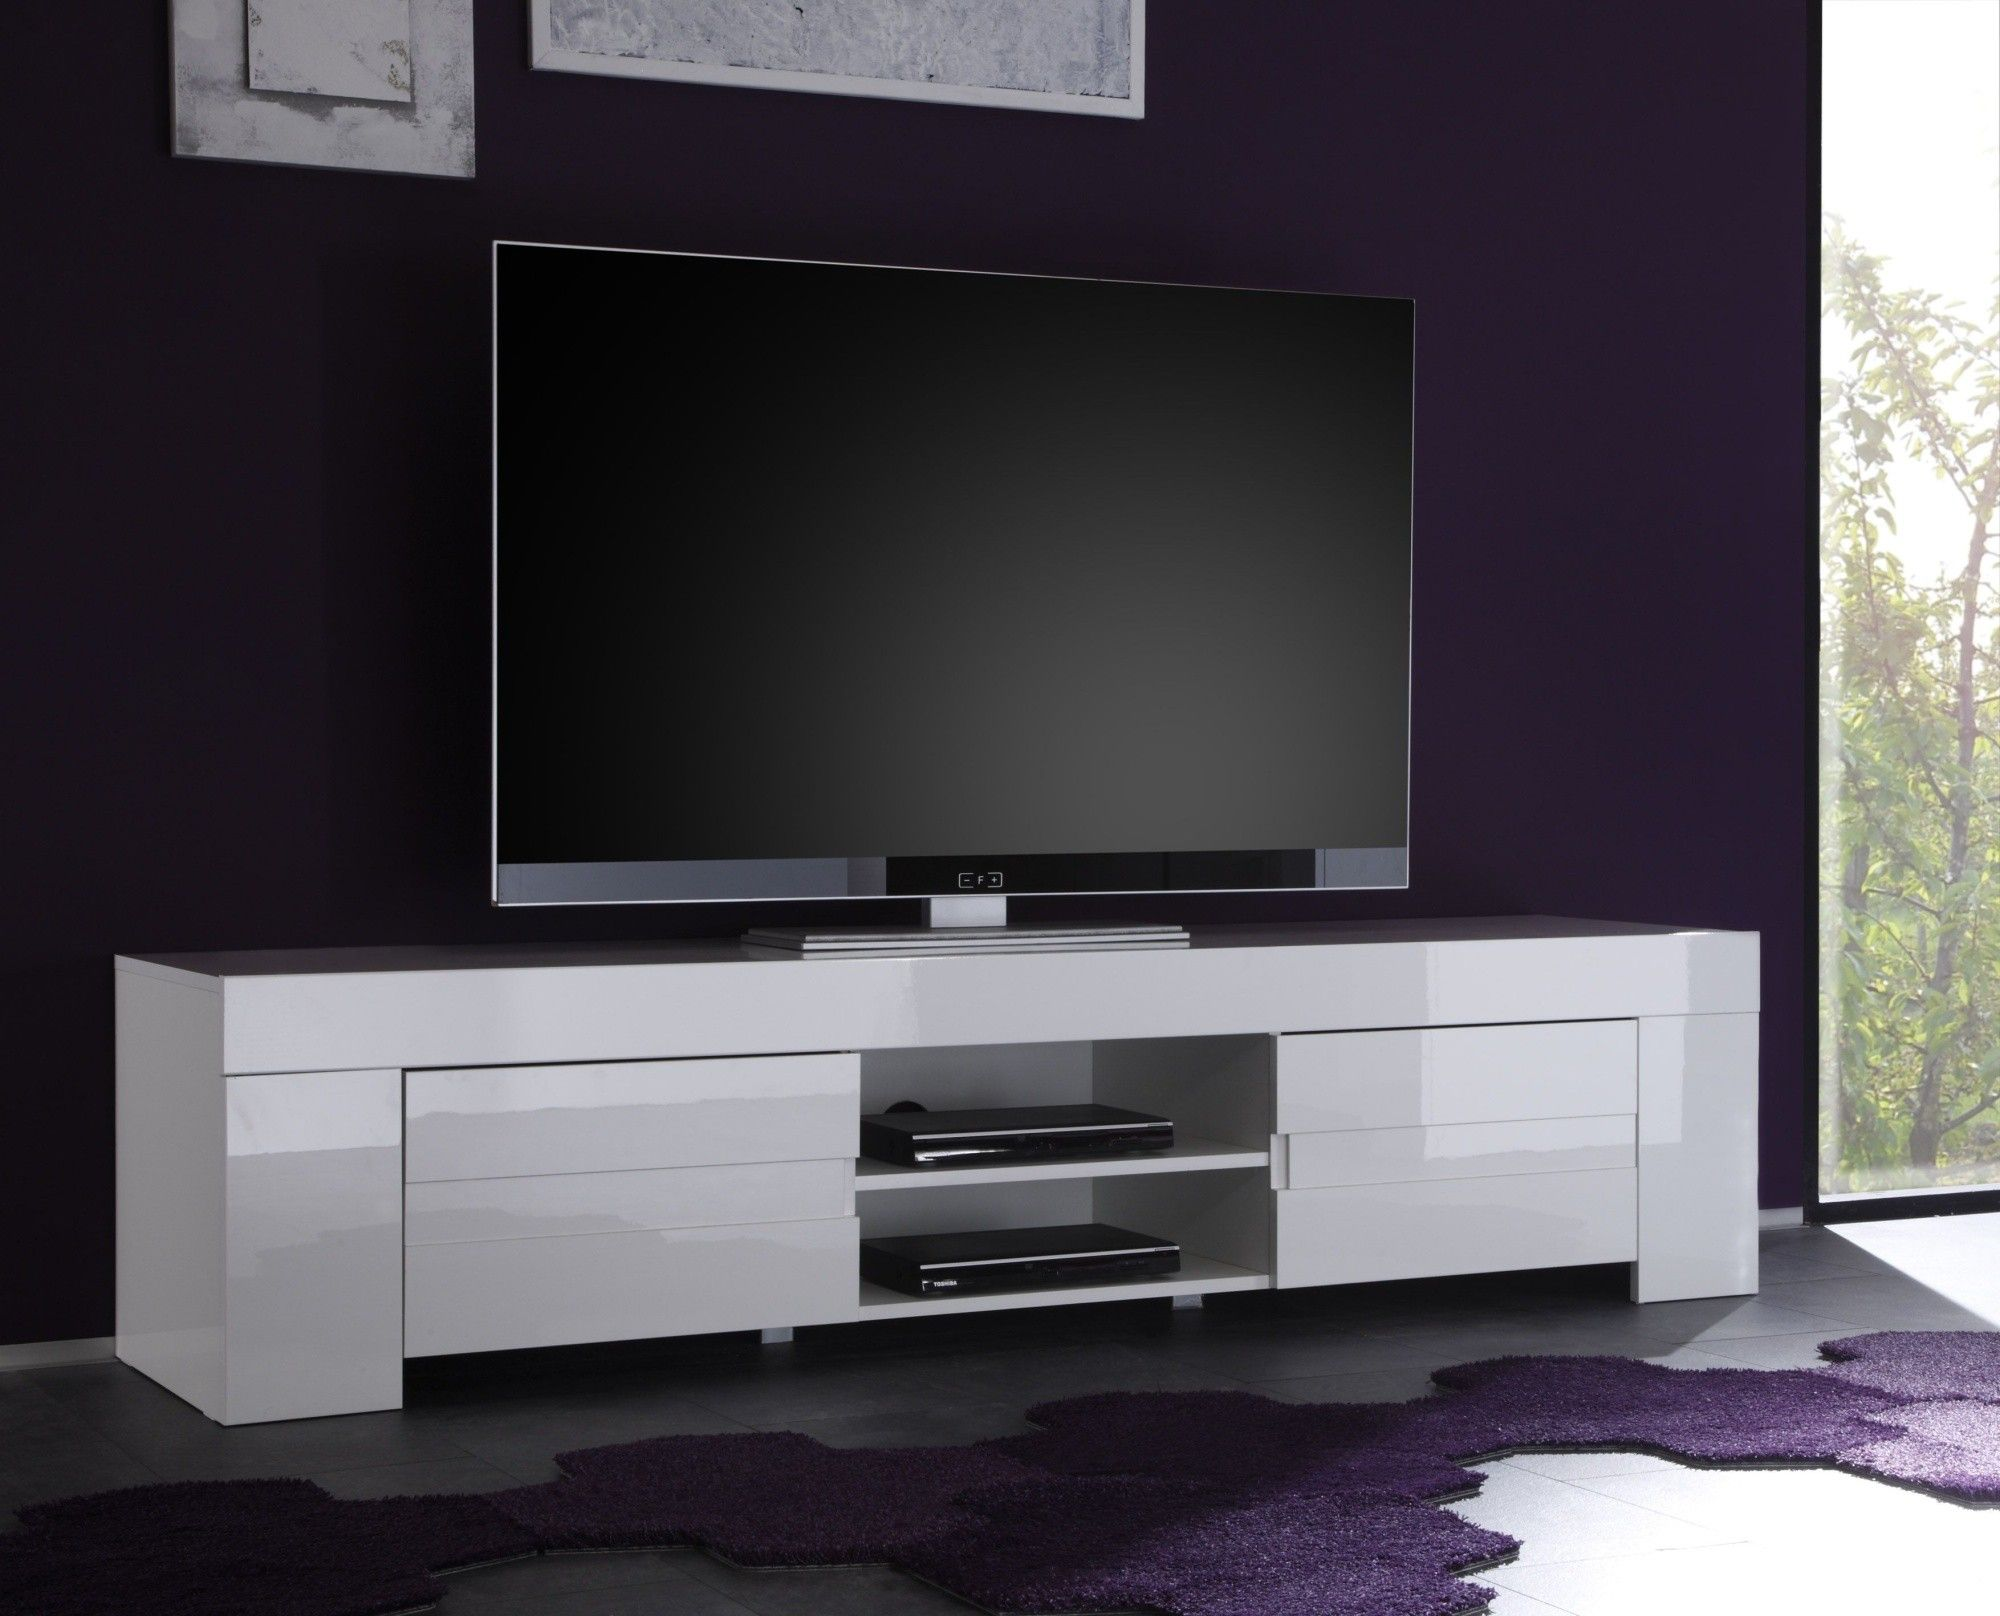 Meuble Tv Solde - Magnifique Meuble Tv Design Pas Cher Blanc Am Nag Salon [mjhdah]http://www.matelpro.com/media/catalog/product/cache/1/image/9df78eab33525d08d6e5fb8d27136e95/m/e/meuble-tv-design-150-cm-laqu_-blanc-gris-agadir.jpg